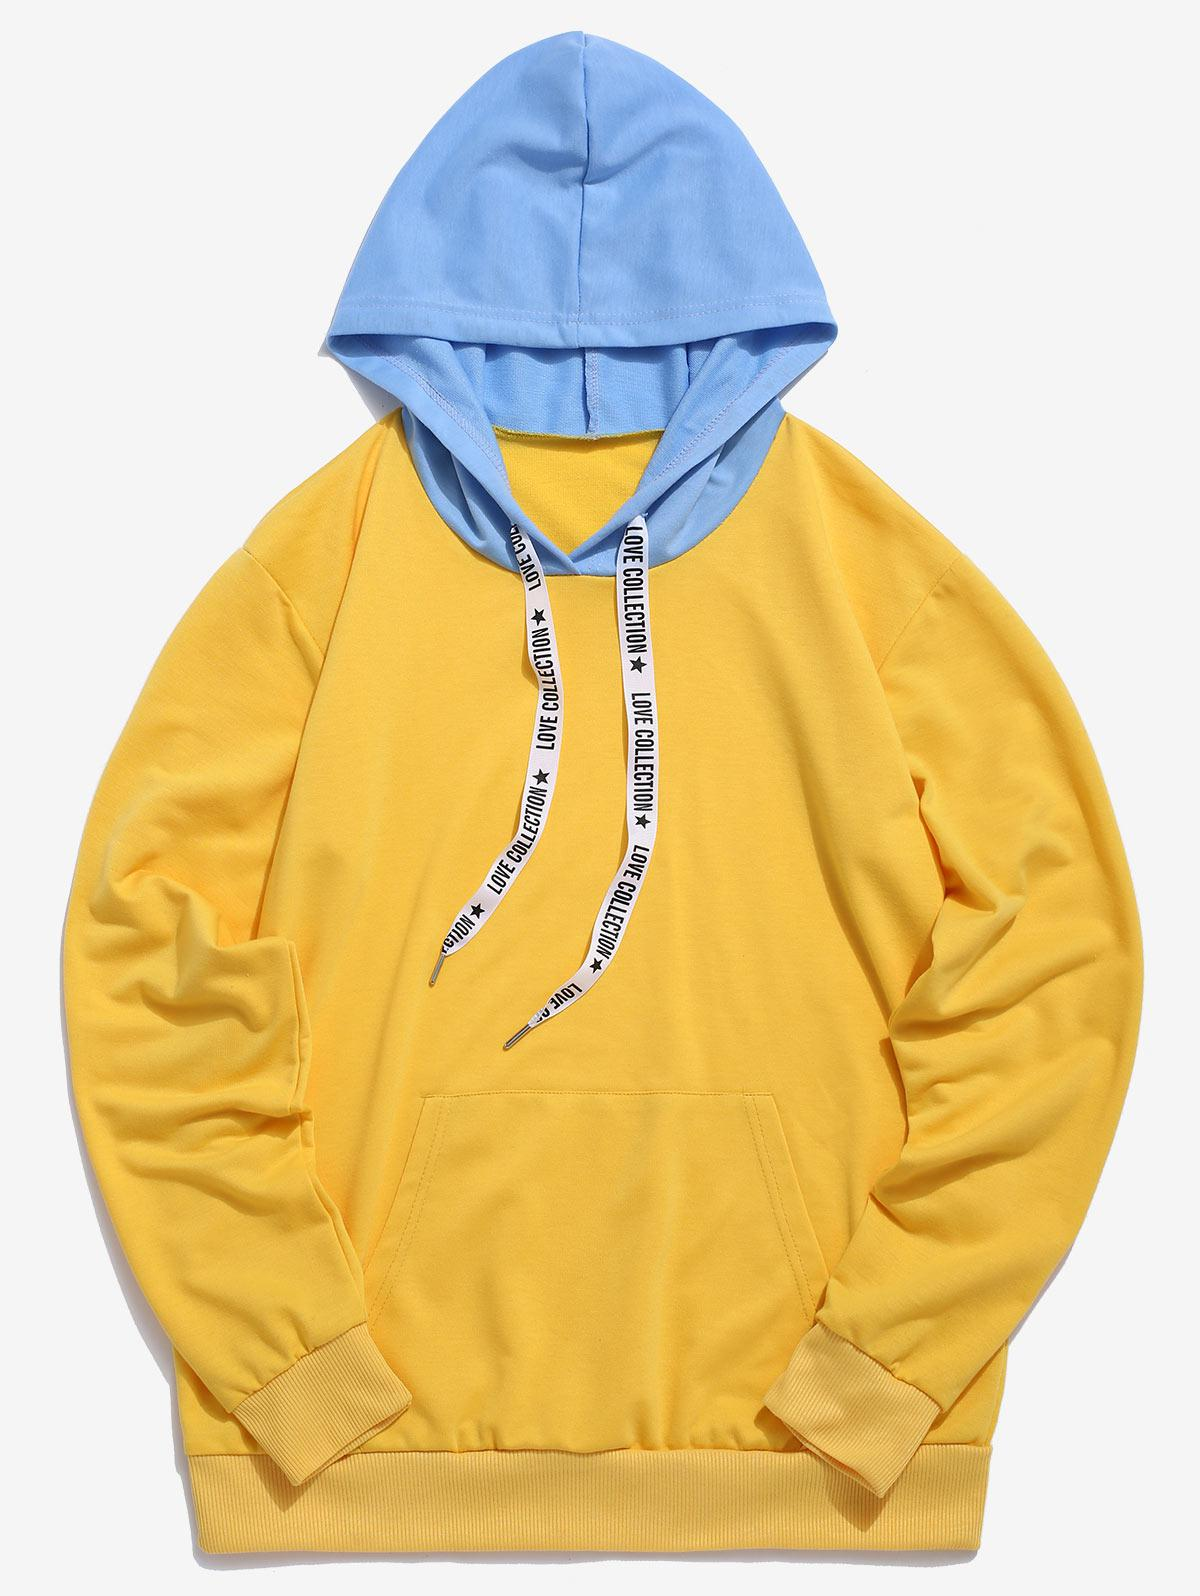 ZAFUL Kangaroo Pocket Letter Printed Drawstring Hoodie, Bright yellow